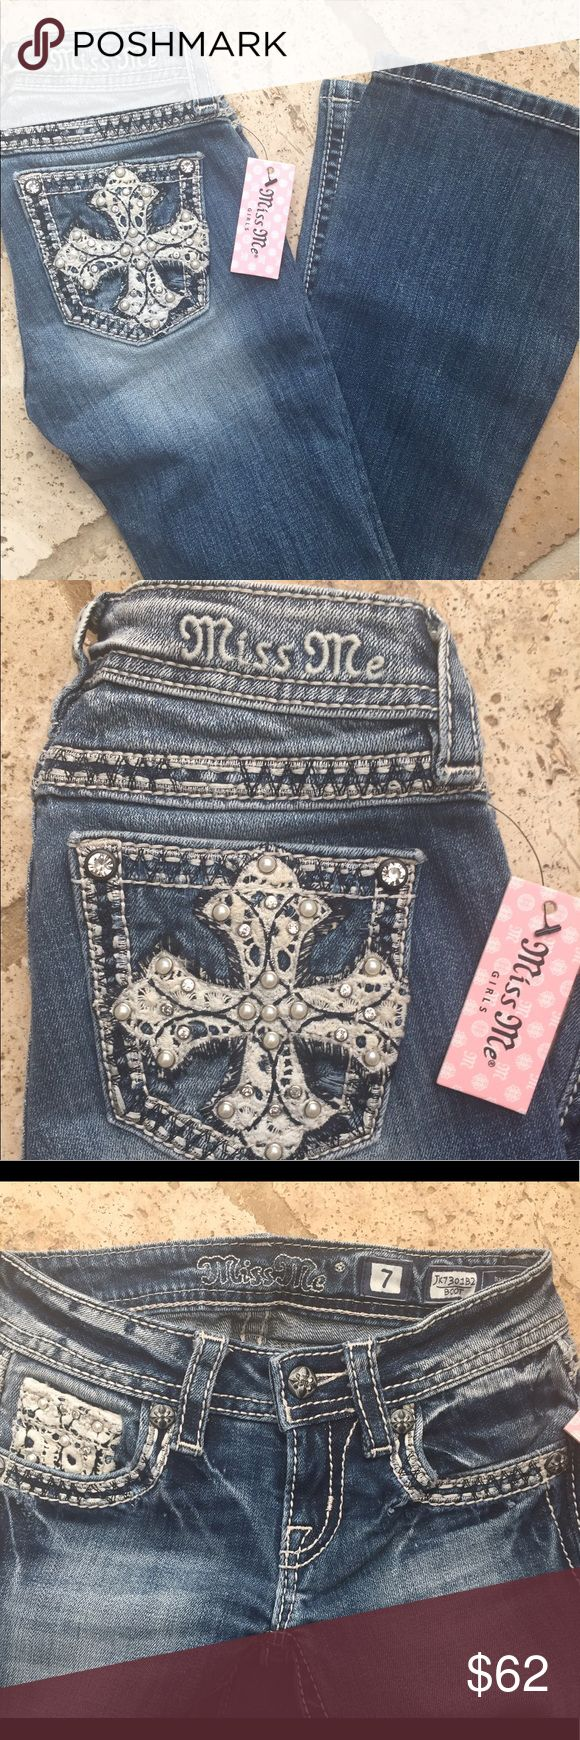 NWT Little Girls Miss Me Jeans - Bootcut - Sz 7 New with tags - Little Girls Miss Me Jeans - Bootcut - Sz 7 Miss Me Bottoms Jeans